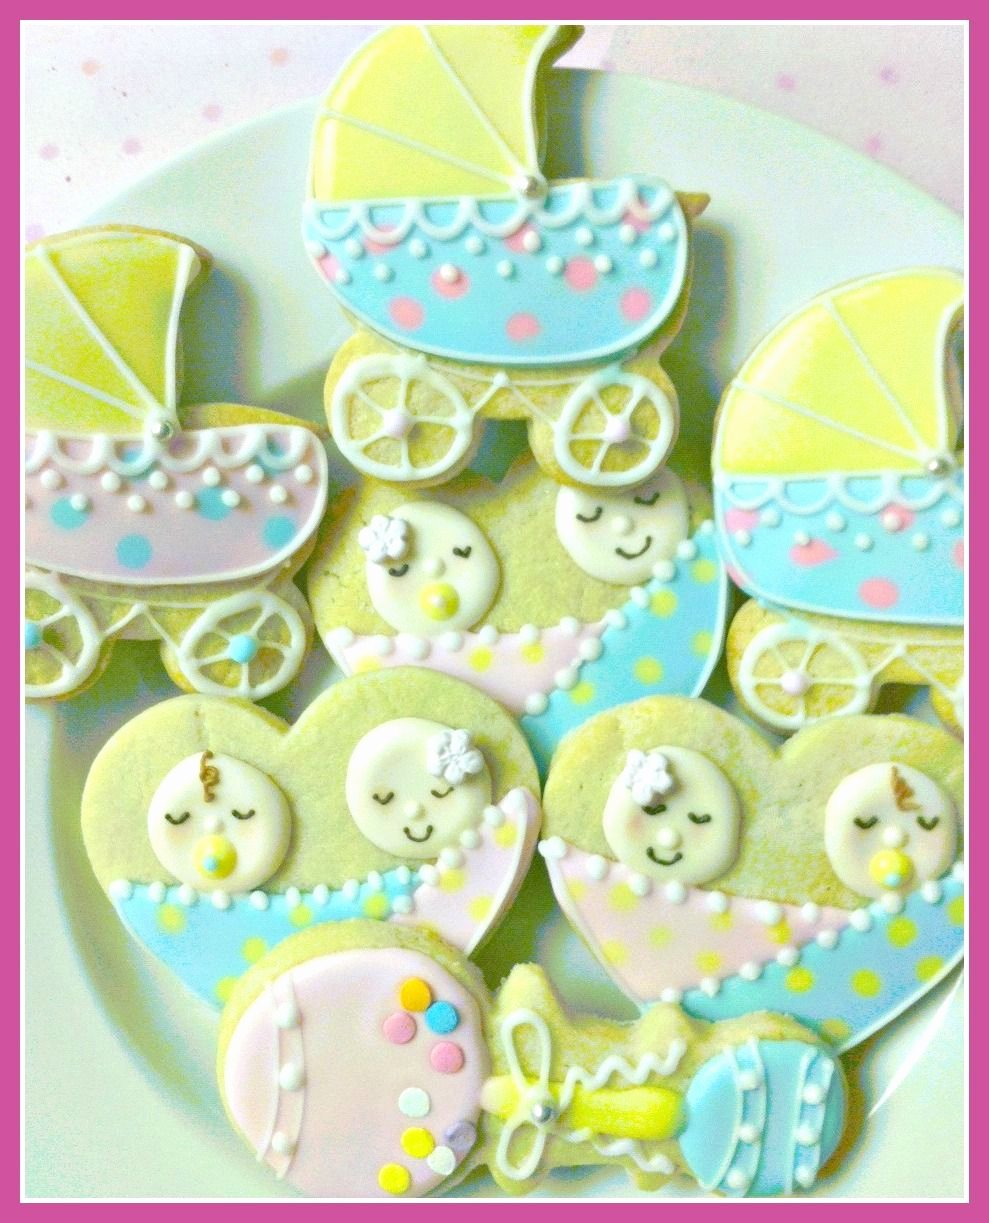 Free Baby Shower Decorations Best Of 33 Baby Shower Ideas for Twins Twin Baby Shower themes